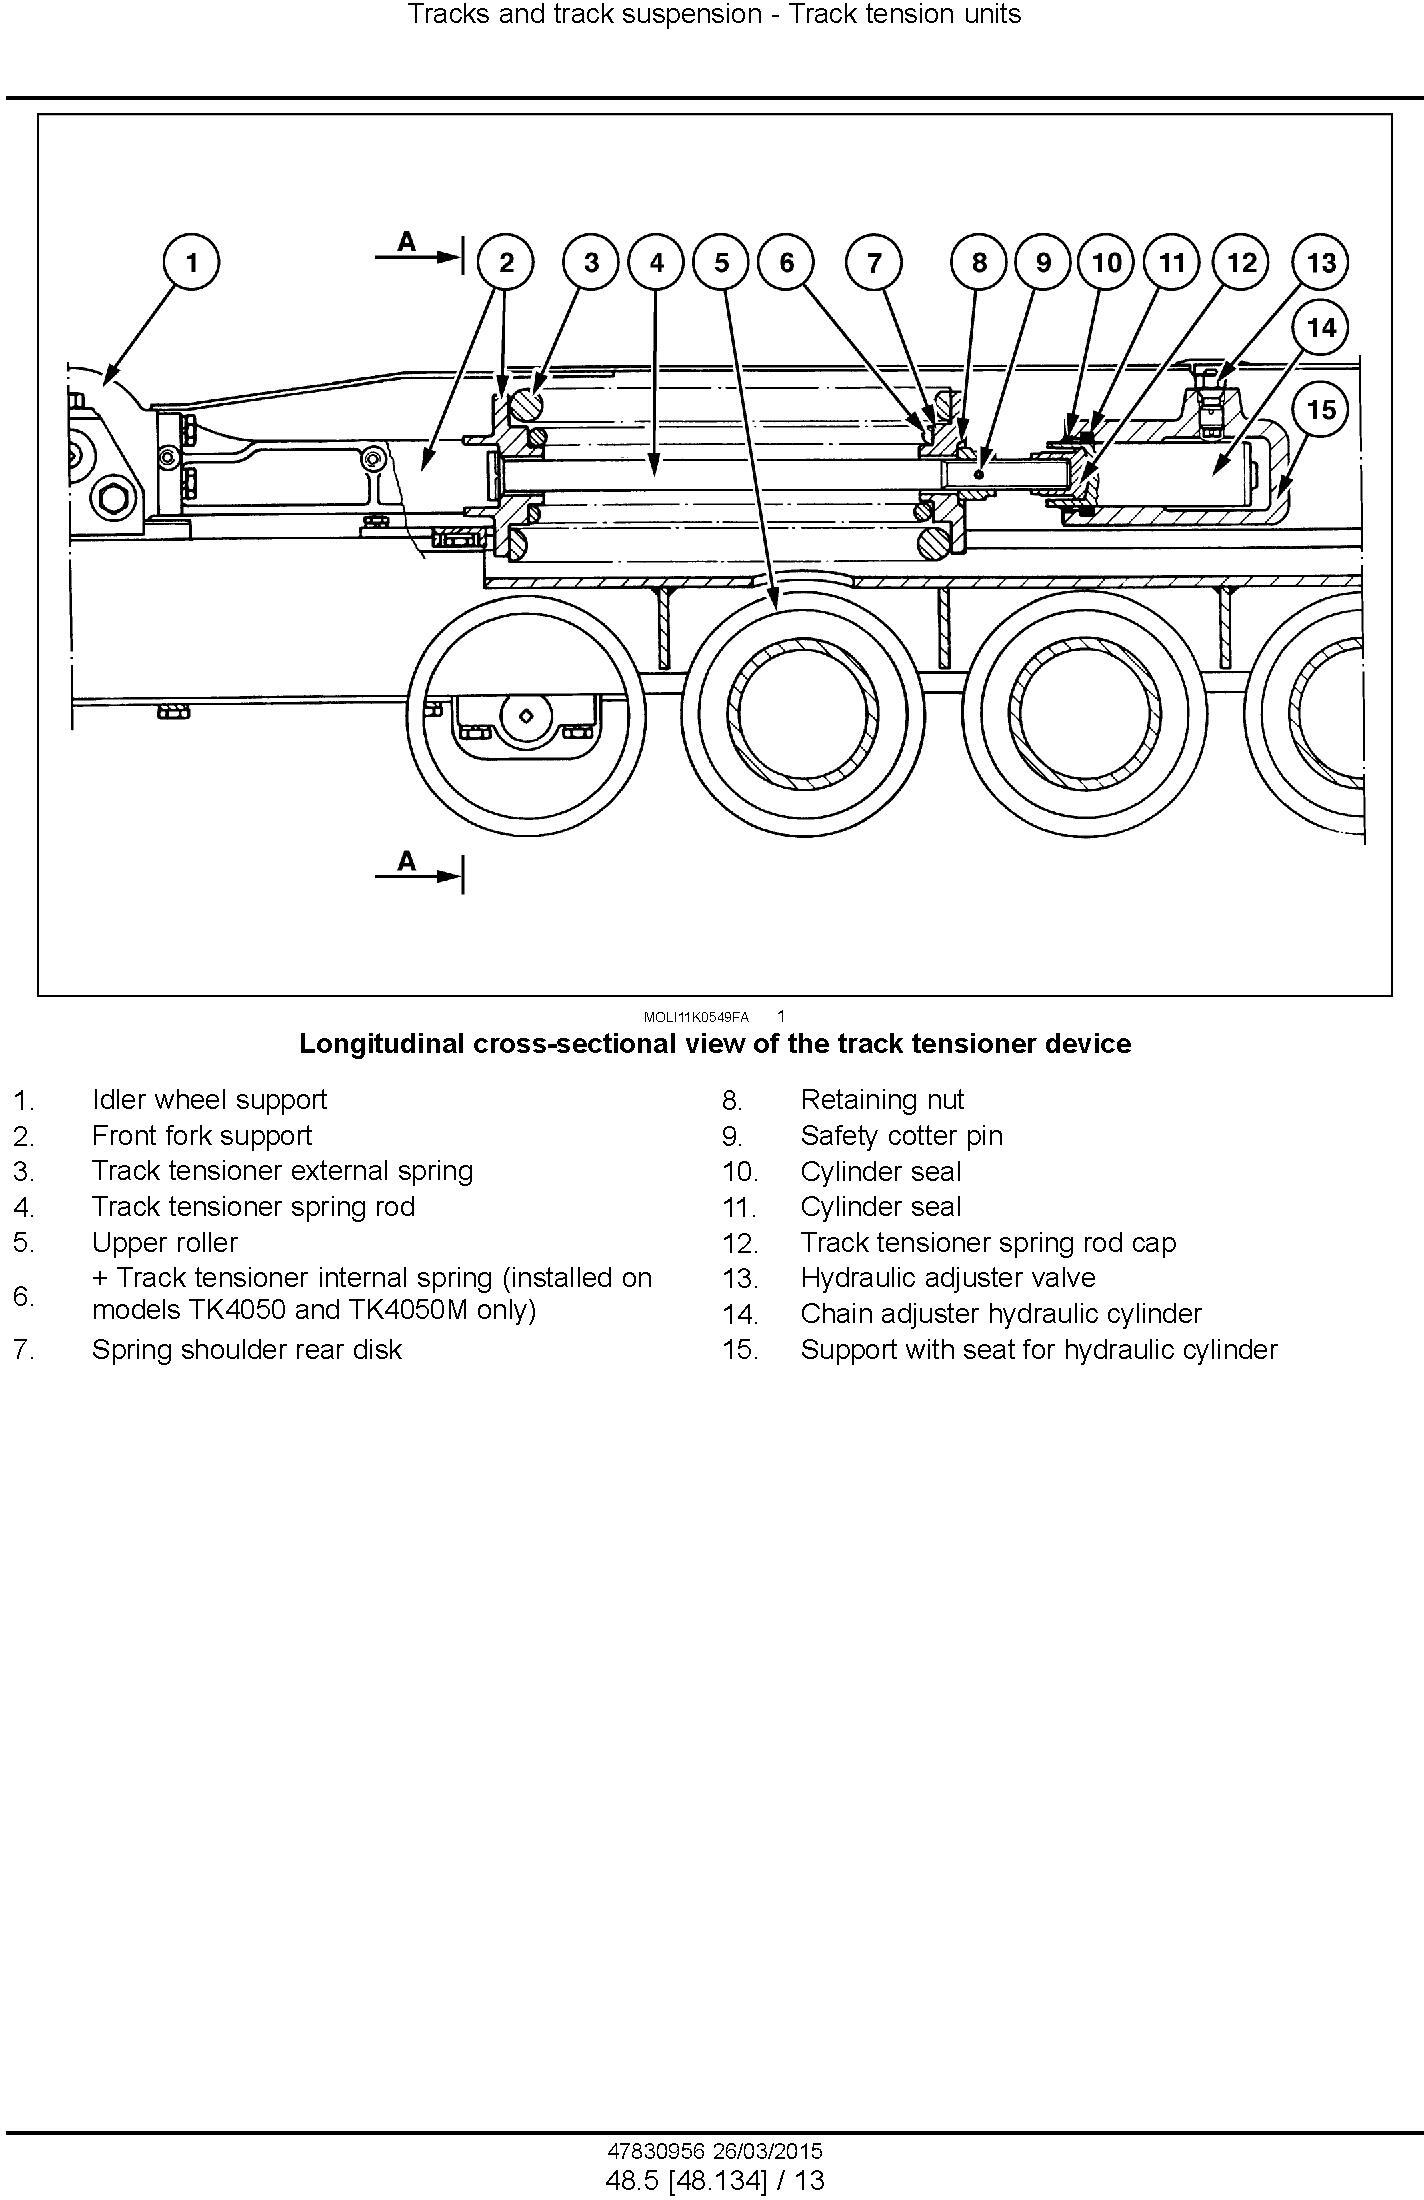 New Holland TK4030V, TK4050, TK4050M, TK4060 tractor Service Manual (North America) - 3